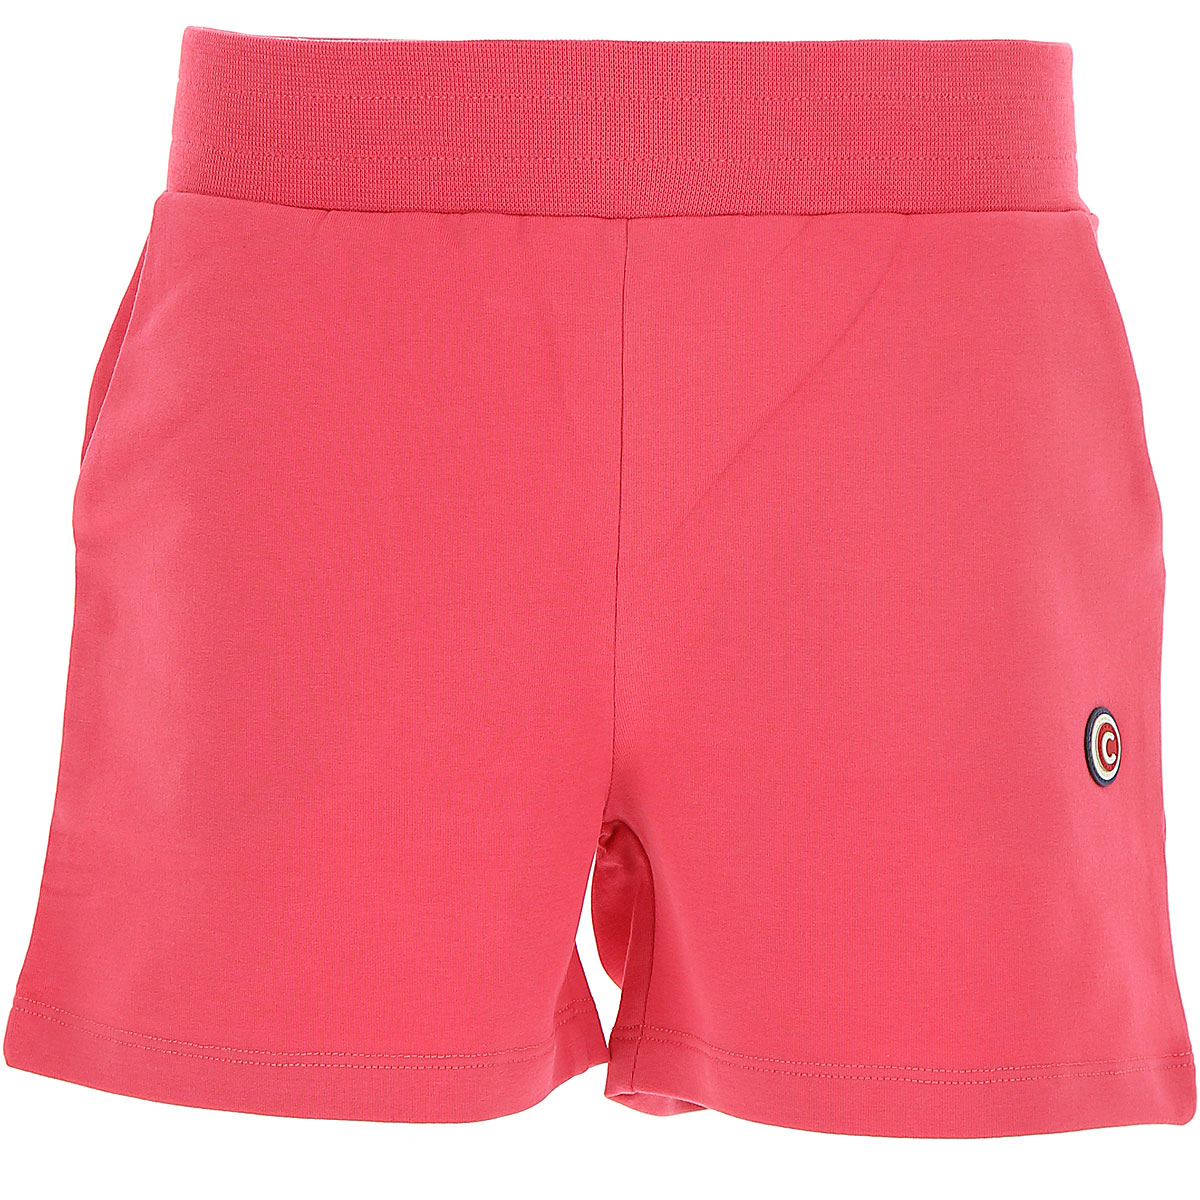 Image of Colmar Kids Shorts for Girls On Sale in Outlet, Azalea Pink, Cotton, 2017, 14Y 16Y